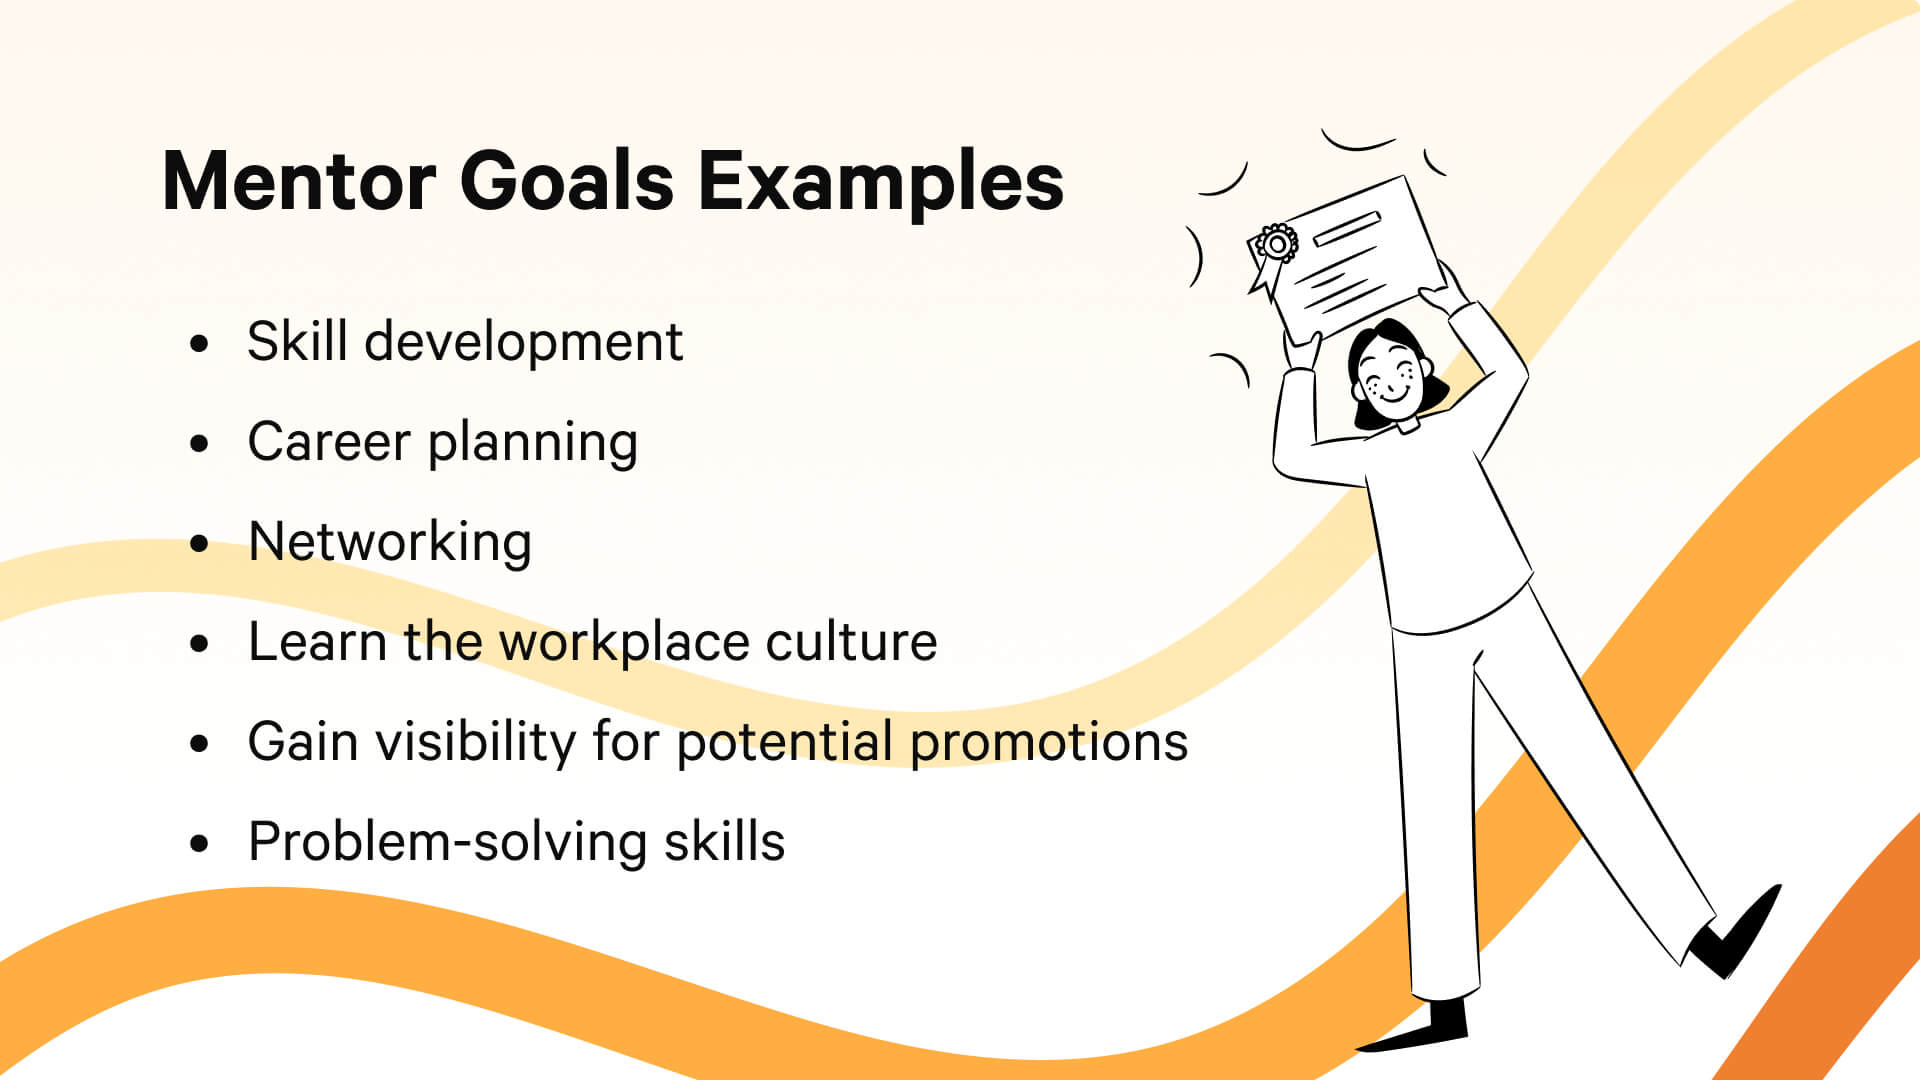 Examples of mentor goals for a mentoring relationship